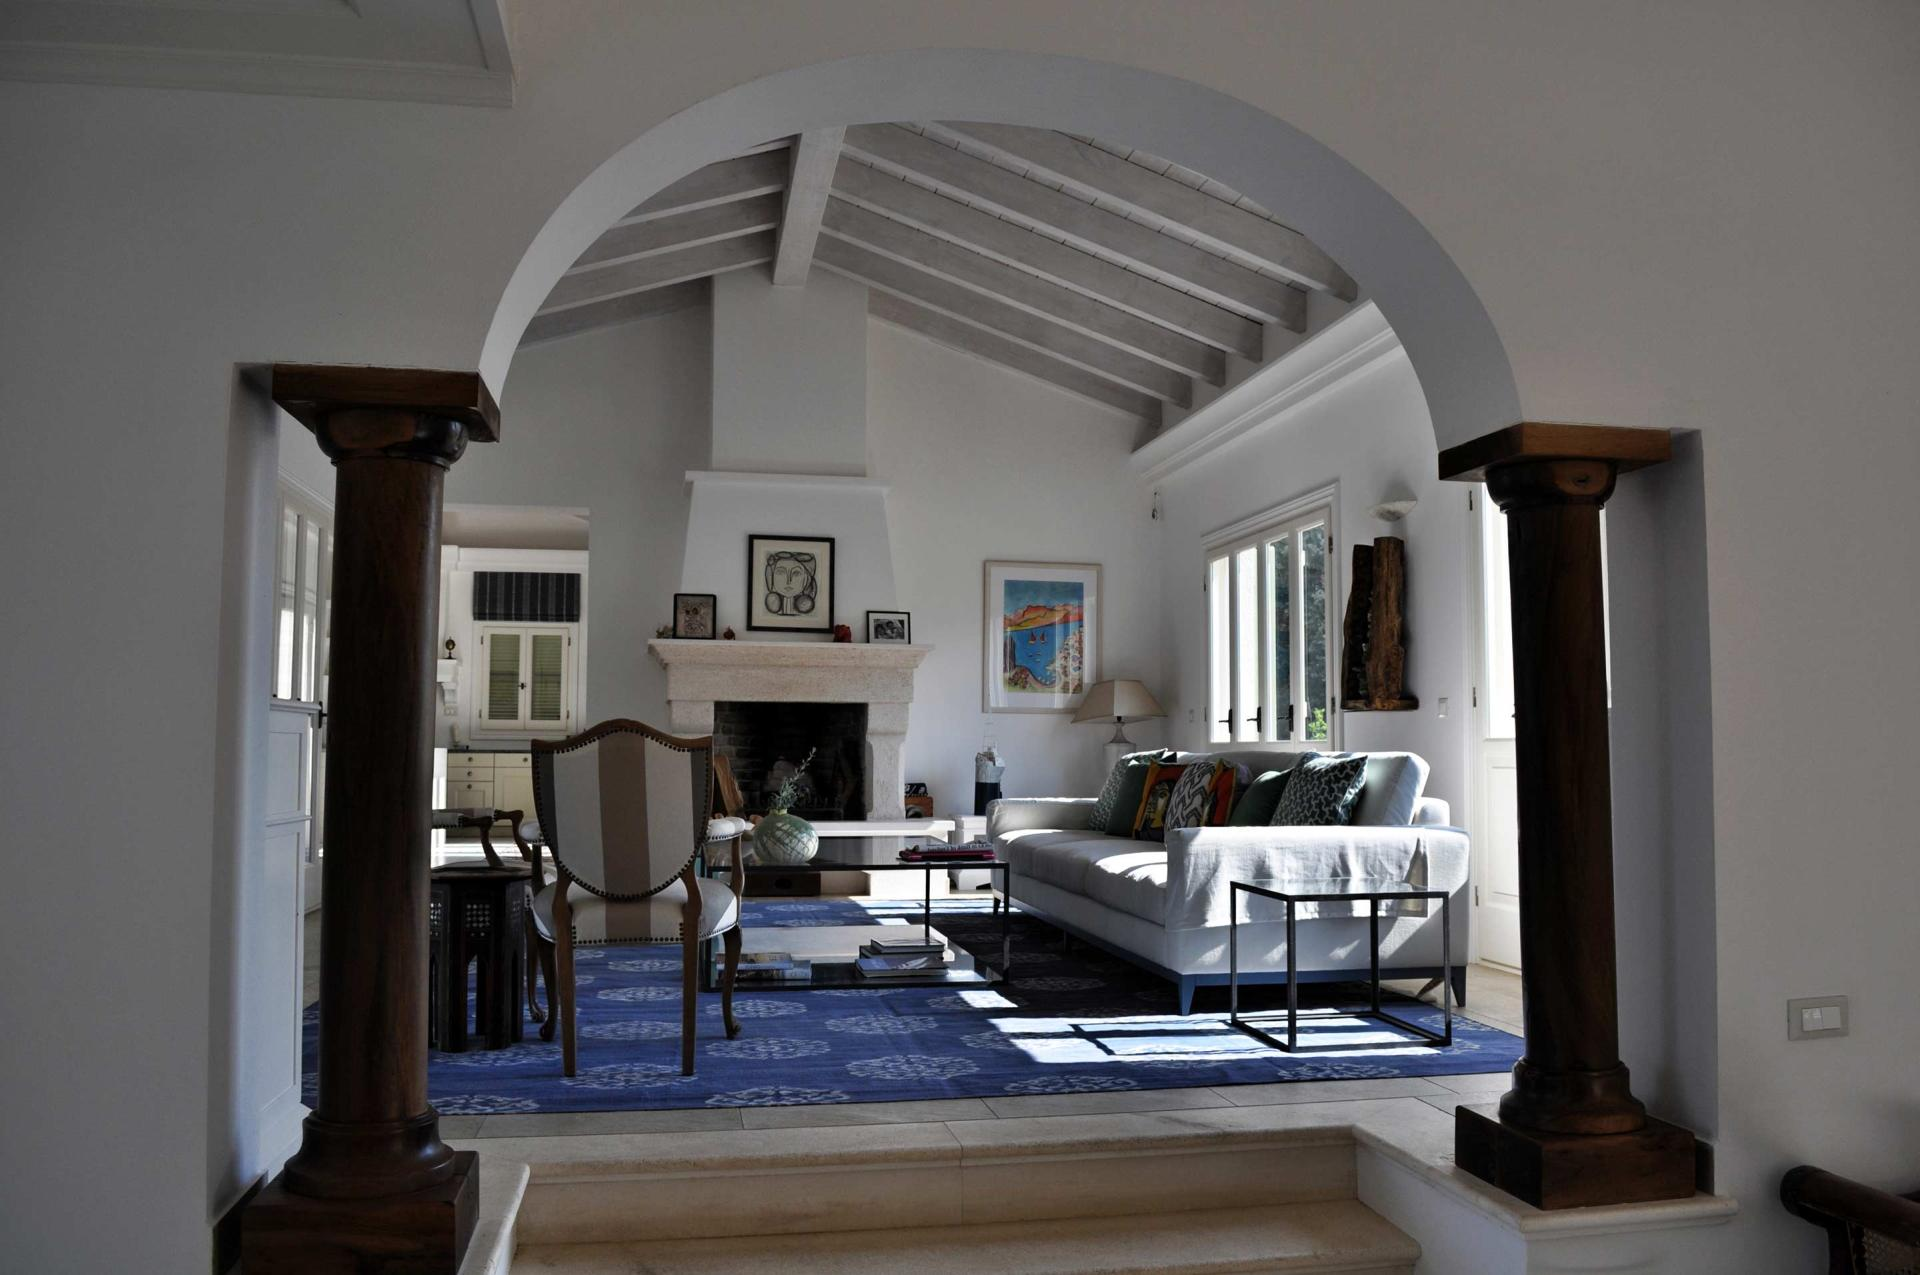 Spectacular room arch with dark columns